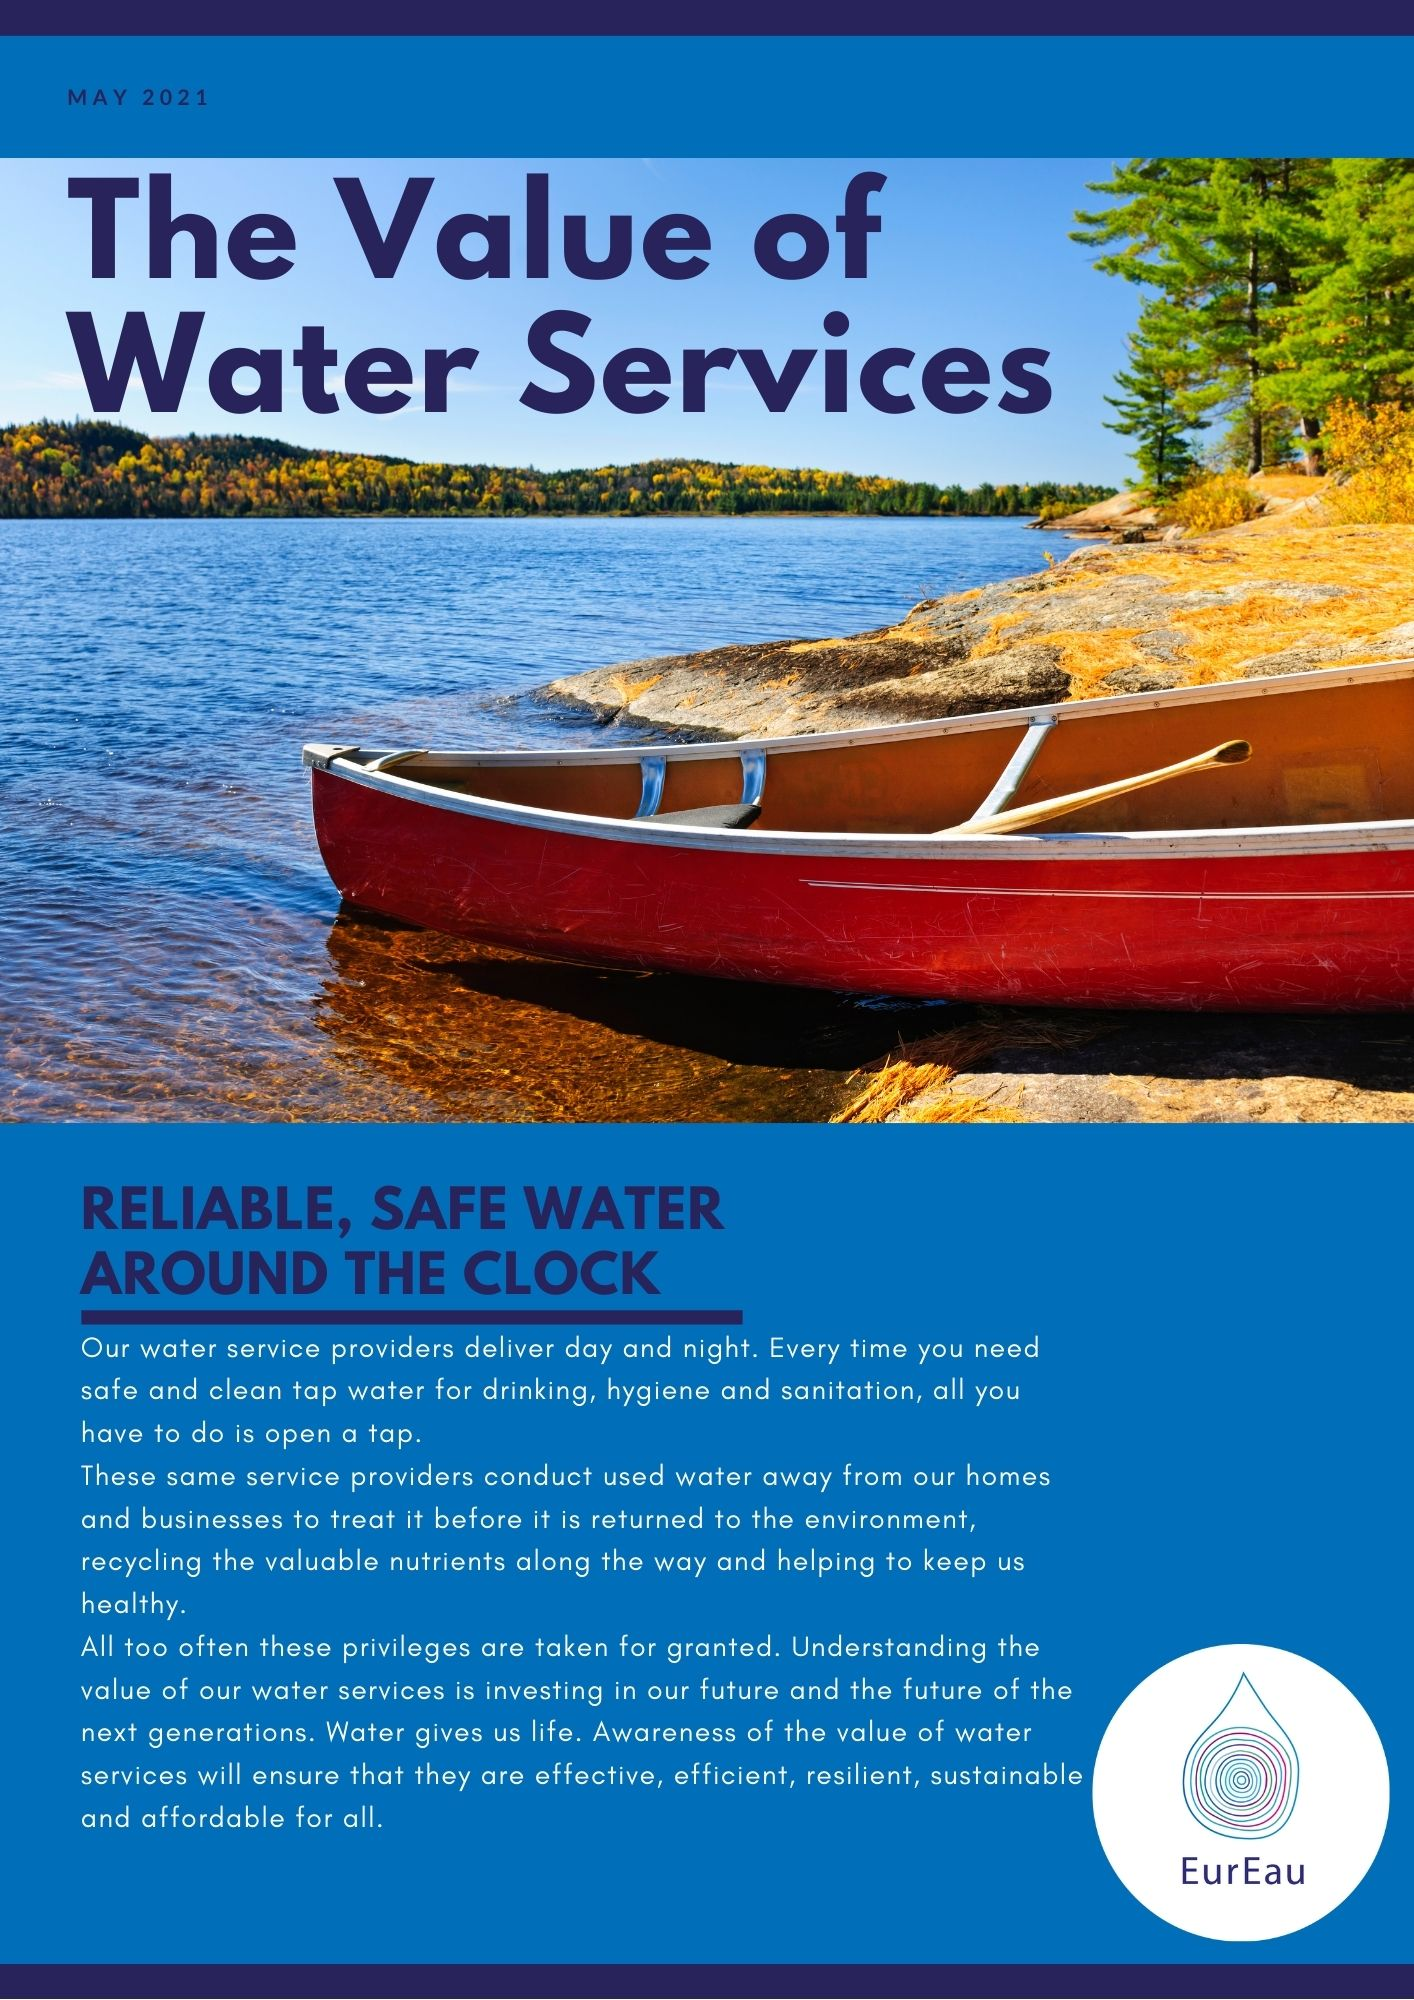 The Value of Water Services